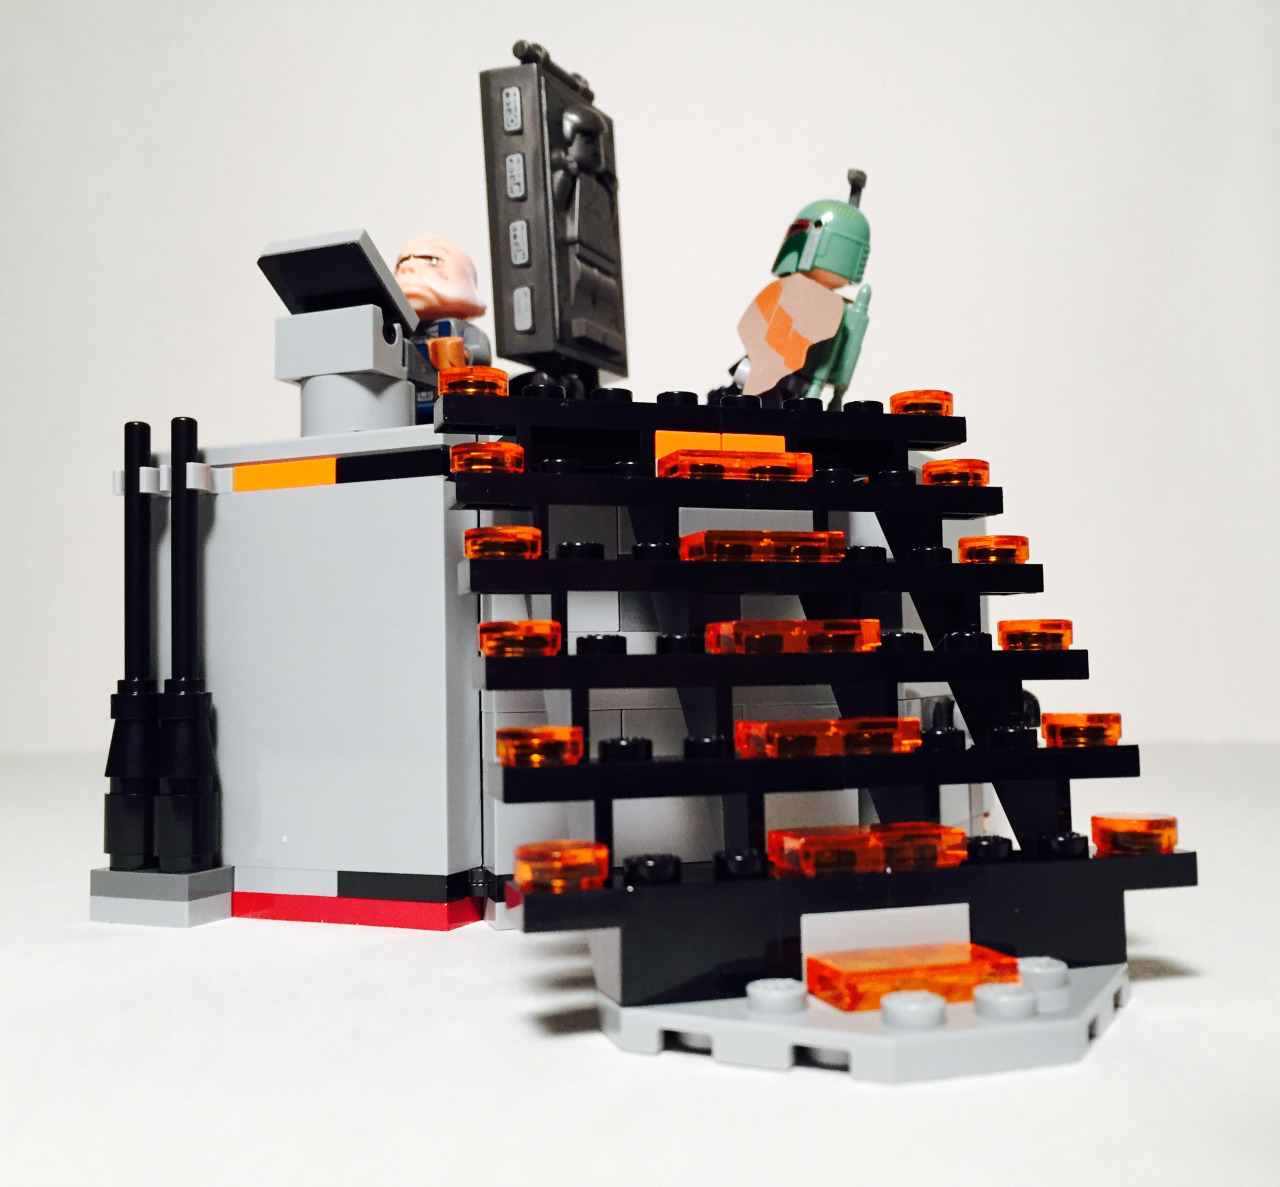 The stairs do look great with the use of the 1x2 trans-orange pieces.